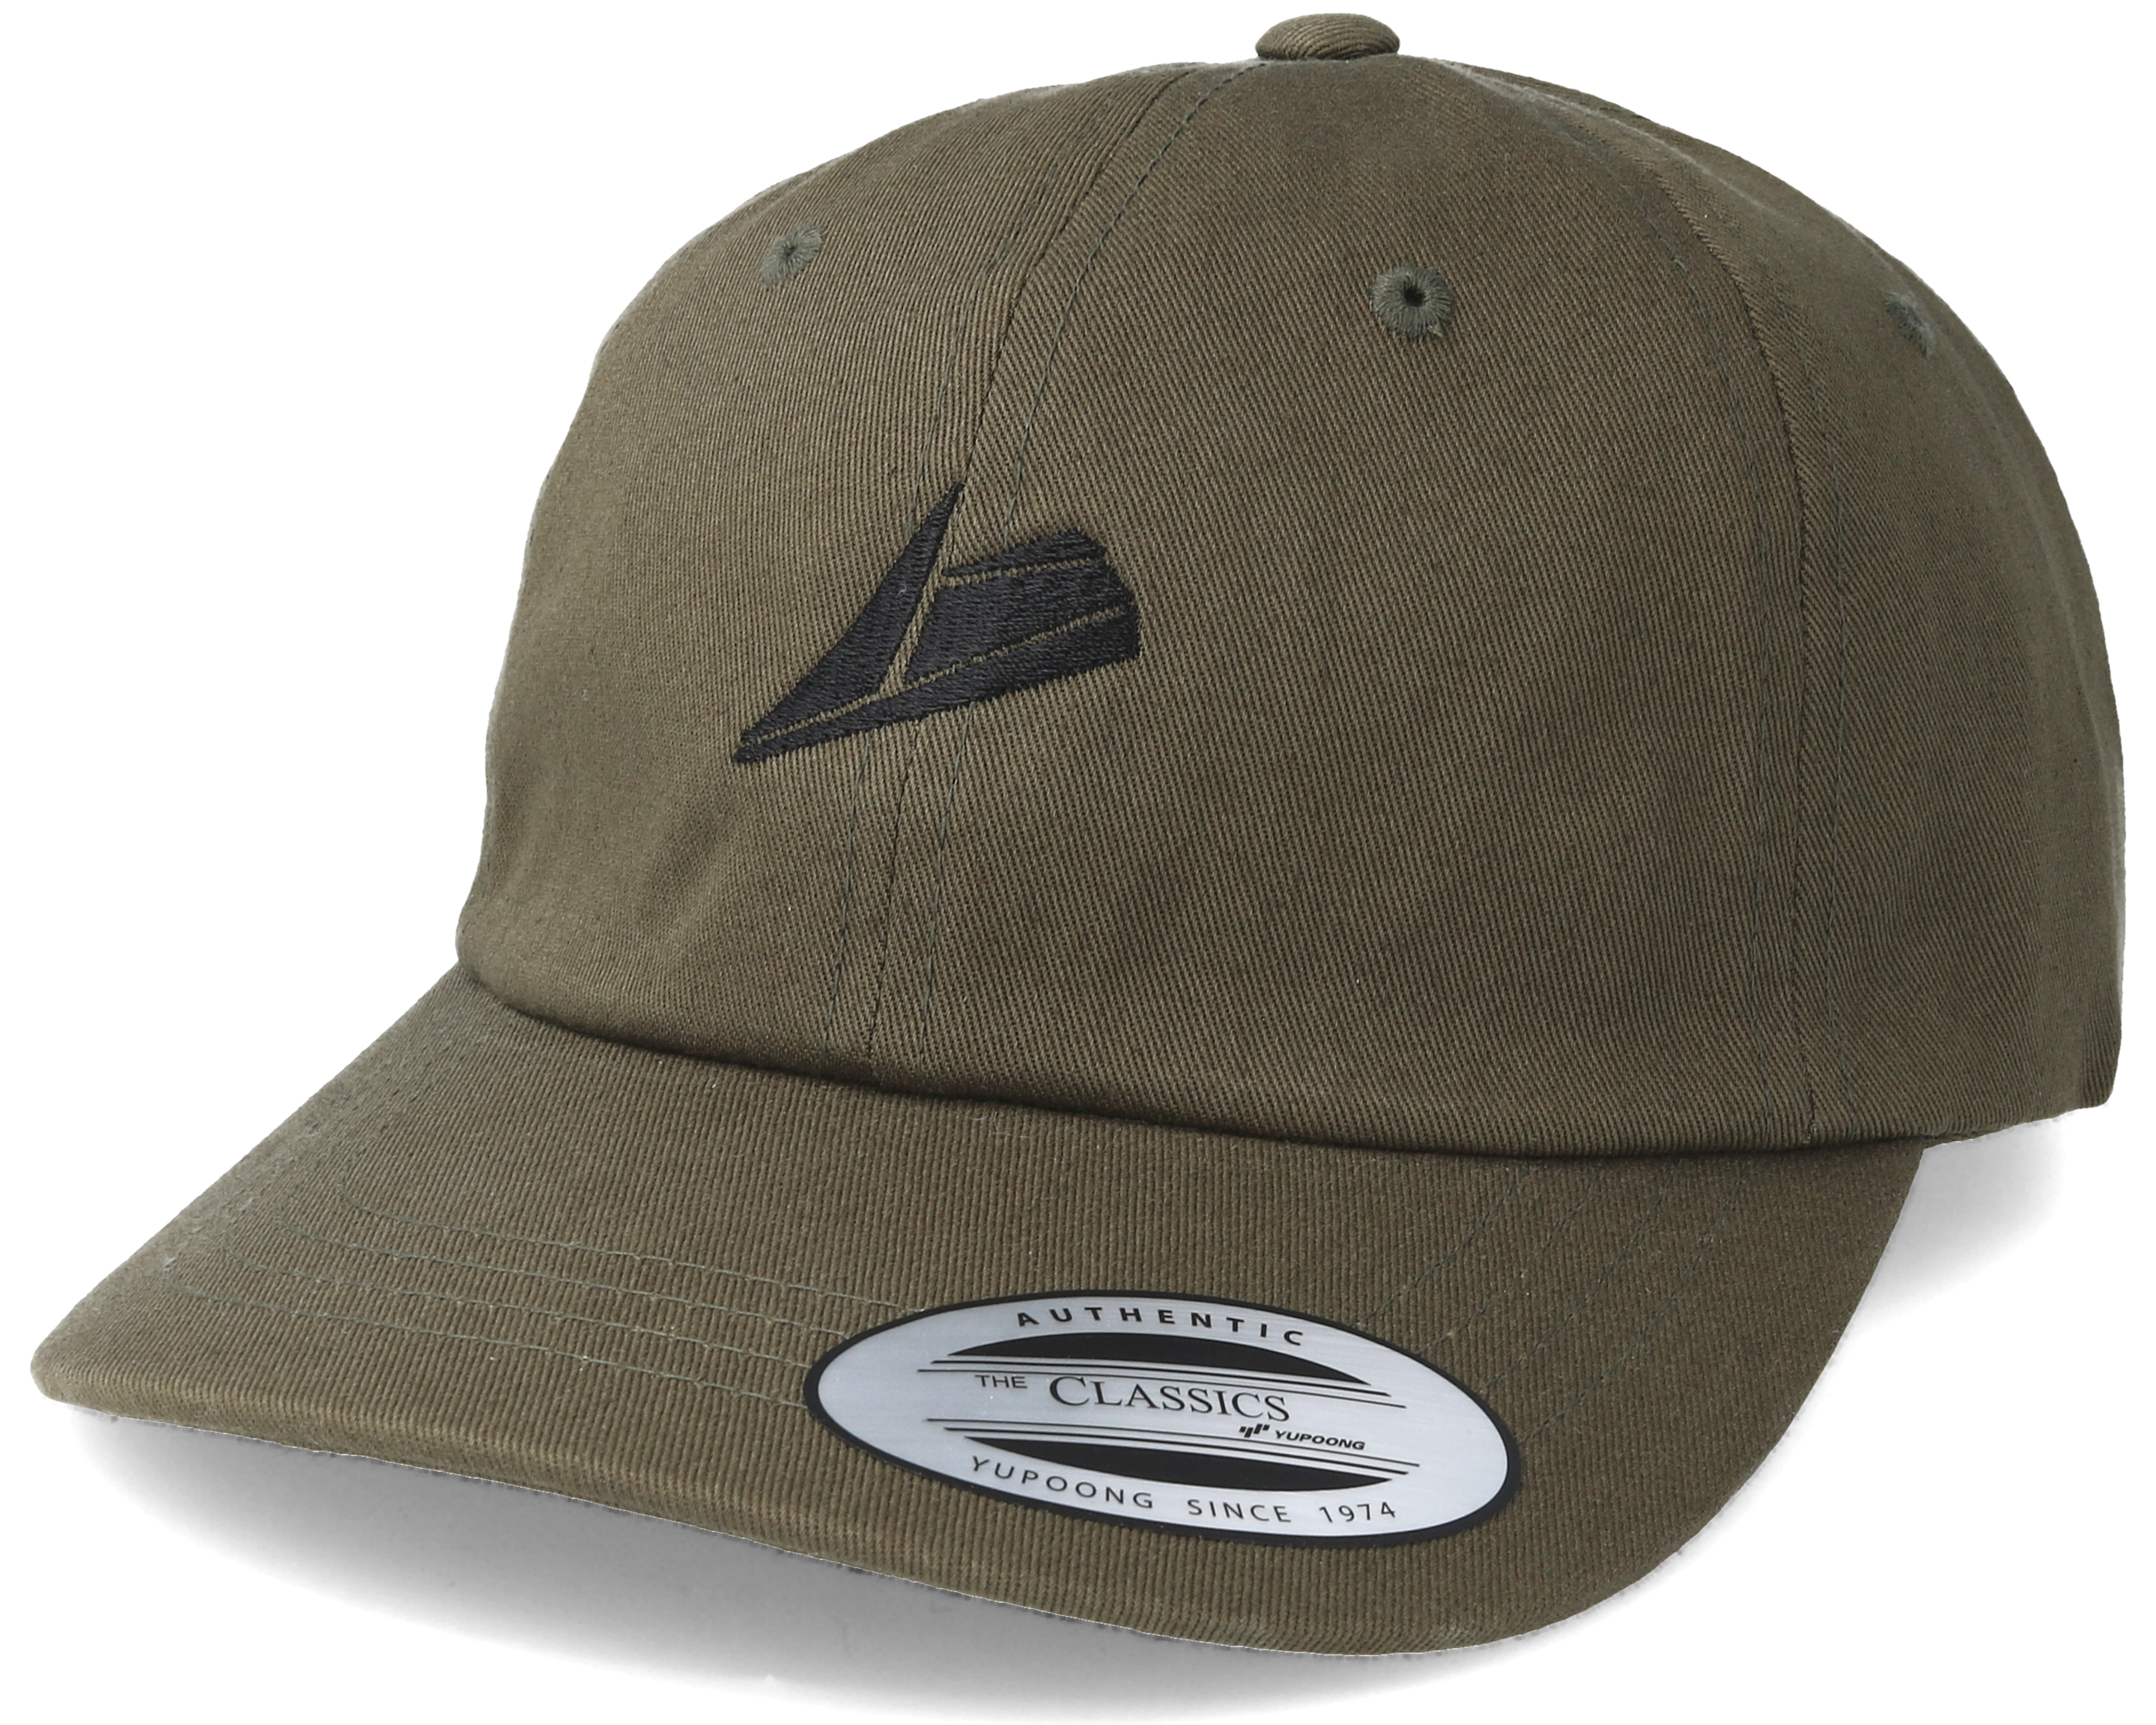 Black Logo Olive Dad Cap Adjustable - Sneakers caps  ddbce3f8377